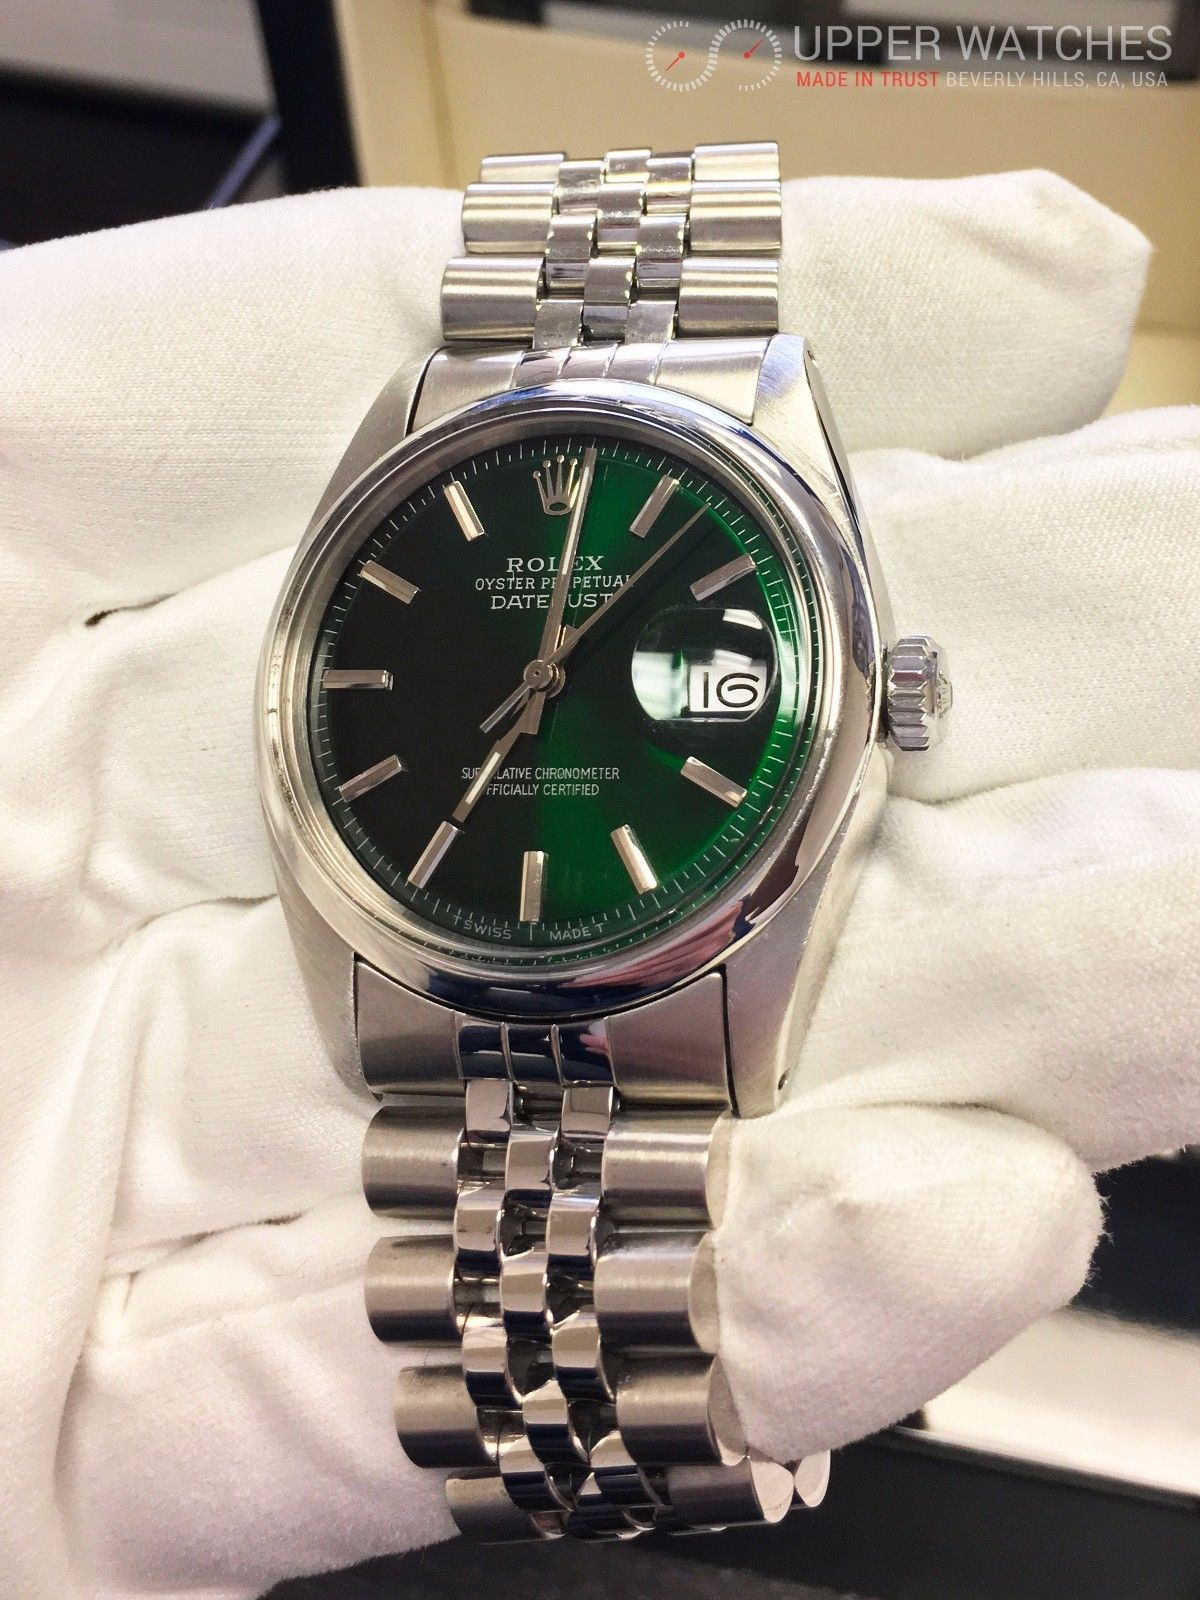 Rolex Datejust 1601 Green Hulk Dial Upper Watches